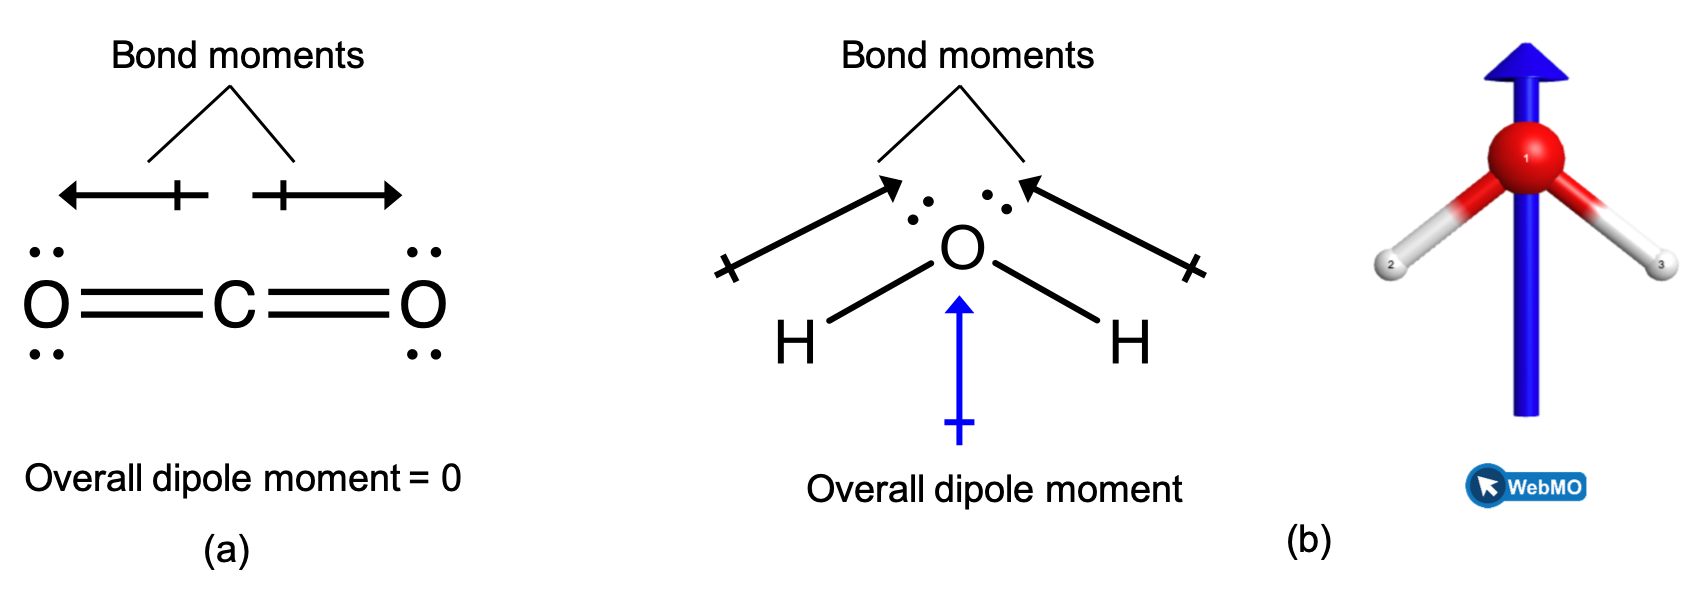 """Two images are shown and labeled, """"a"""" and """"b."""" Image a shows a carbon atom bonded to two oxygen atoms in a ball-and-stick representation. Two arrows face away from the center of the molecule in opposite directions and are drawn horizontally like the molecule. These arrows are labeled, """"Bond moments,"""" and the image is labeled, """"Overall dipole moment equals 0."""" Image b shows an oxygen atom bonded to two hydrogen atoms in a downward-facing v-shaped arrangement. An upward-facing, vertical arrow is drawn below the molecule while two upward and inward facing arrows are drawn above the molecule. The upper arrows are labeled, """"Bond moments,"""" while the image is labeled, """"Overall dipole moment."""""""